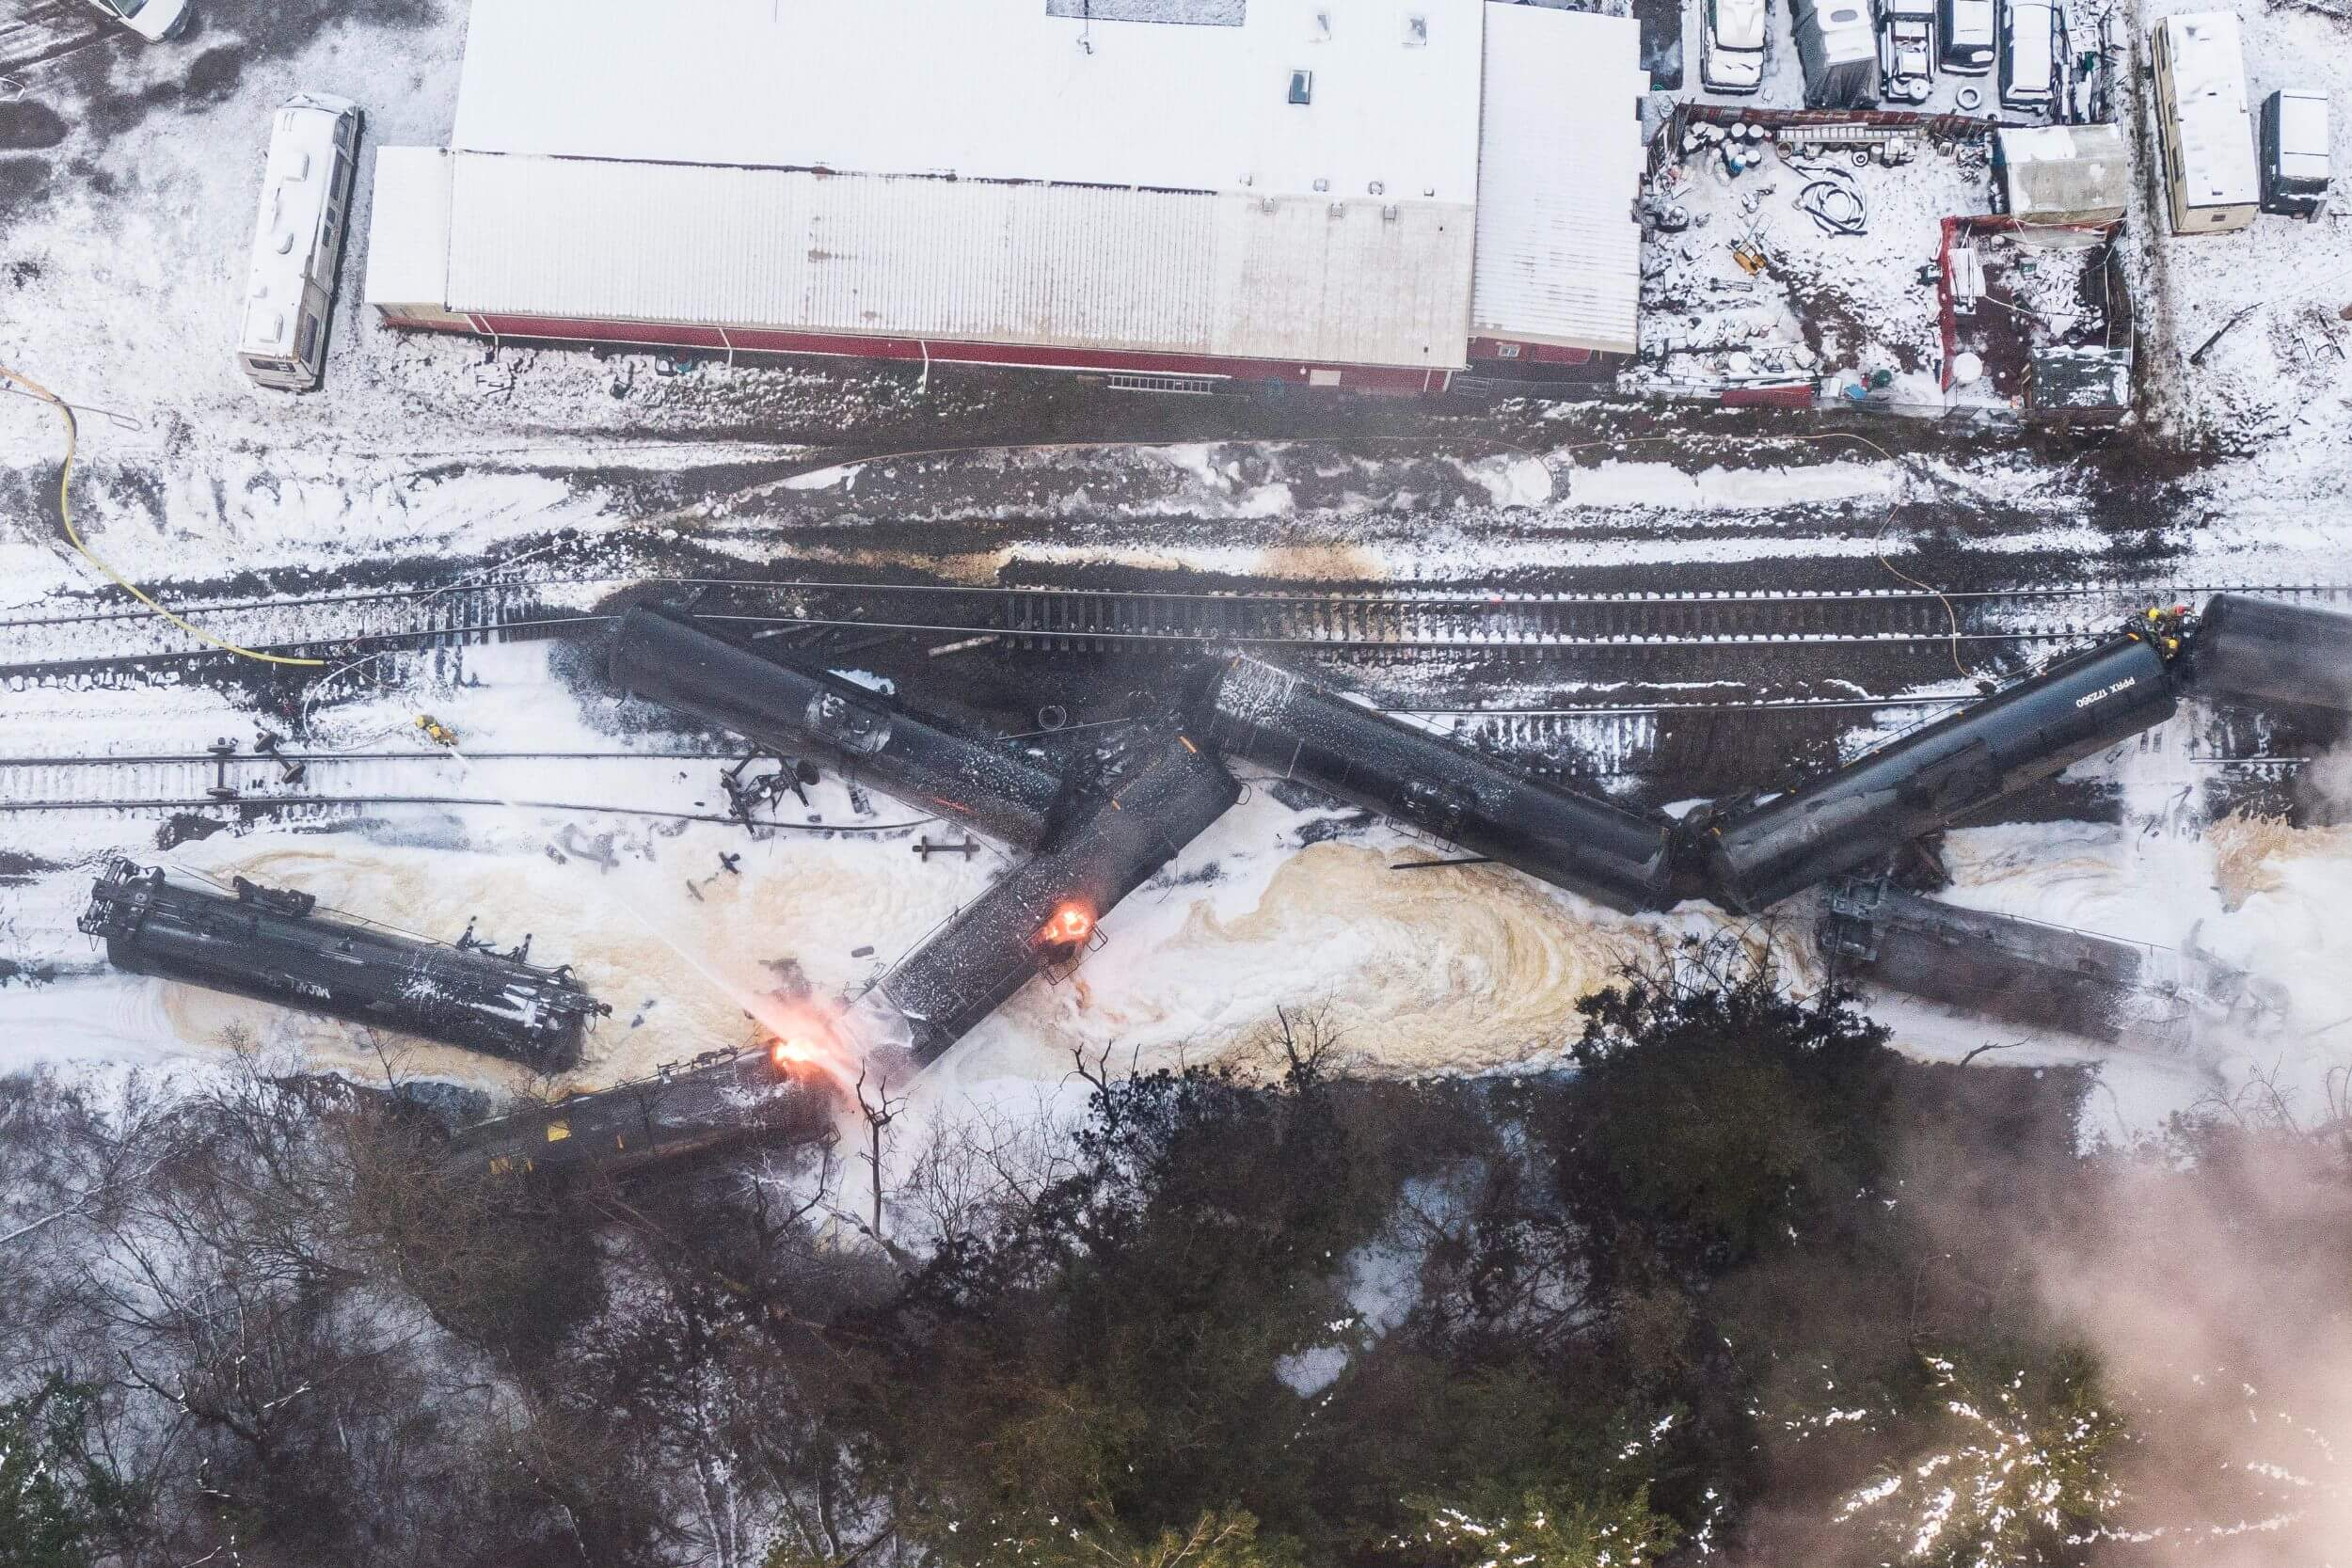 An aerial shot of a crashed train on tracks, surrounded by snow. Two parts of the train are lit up with fire.